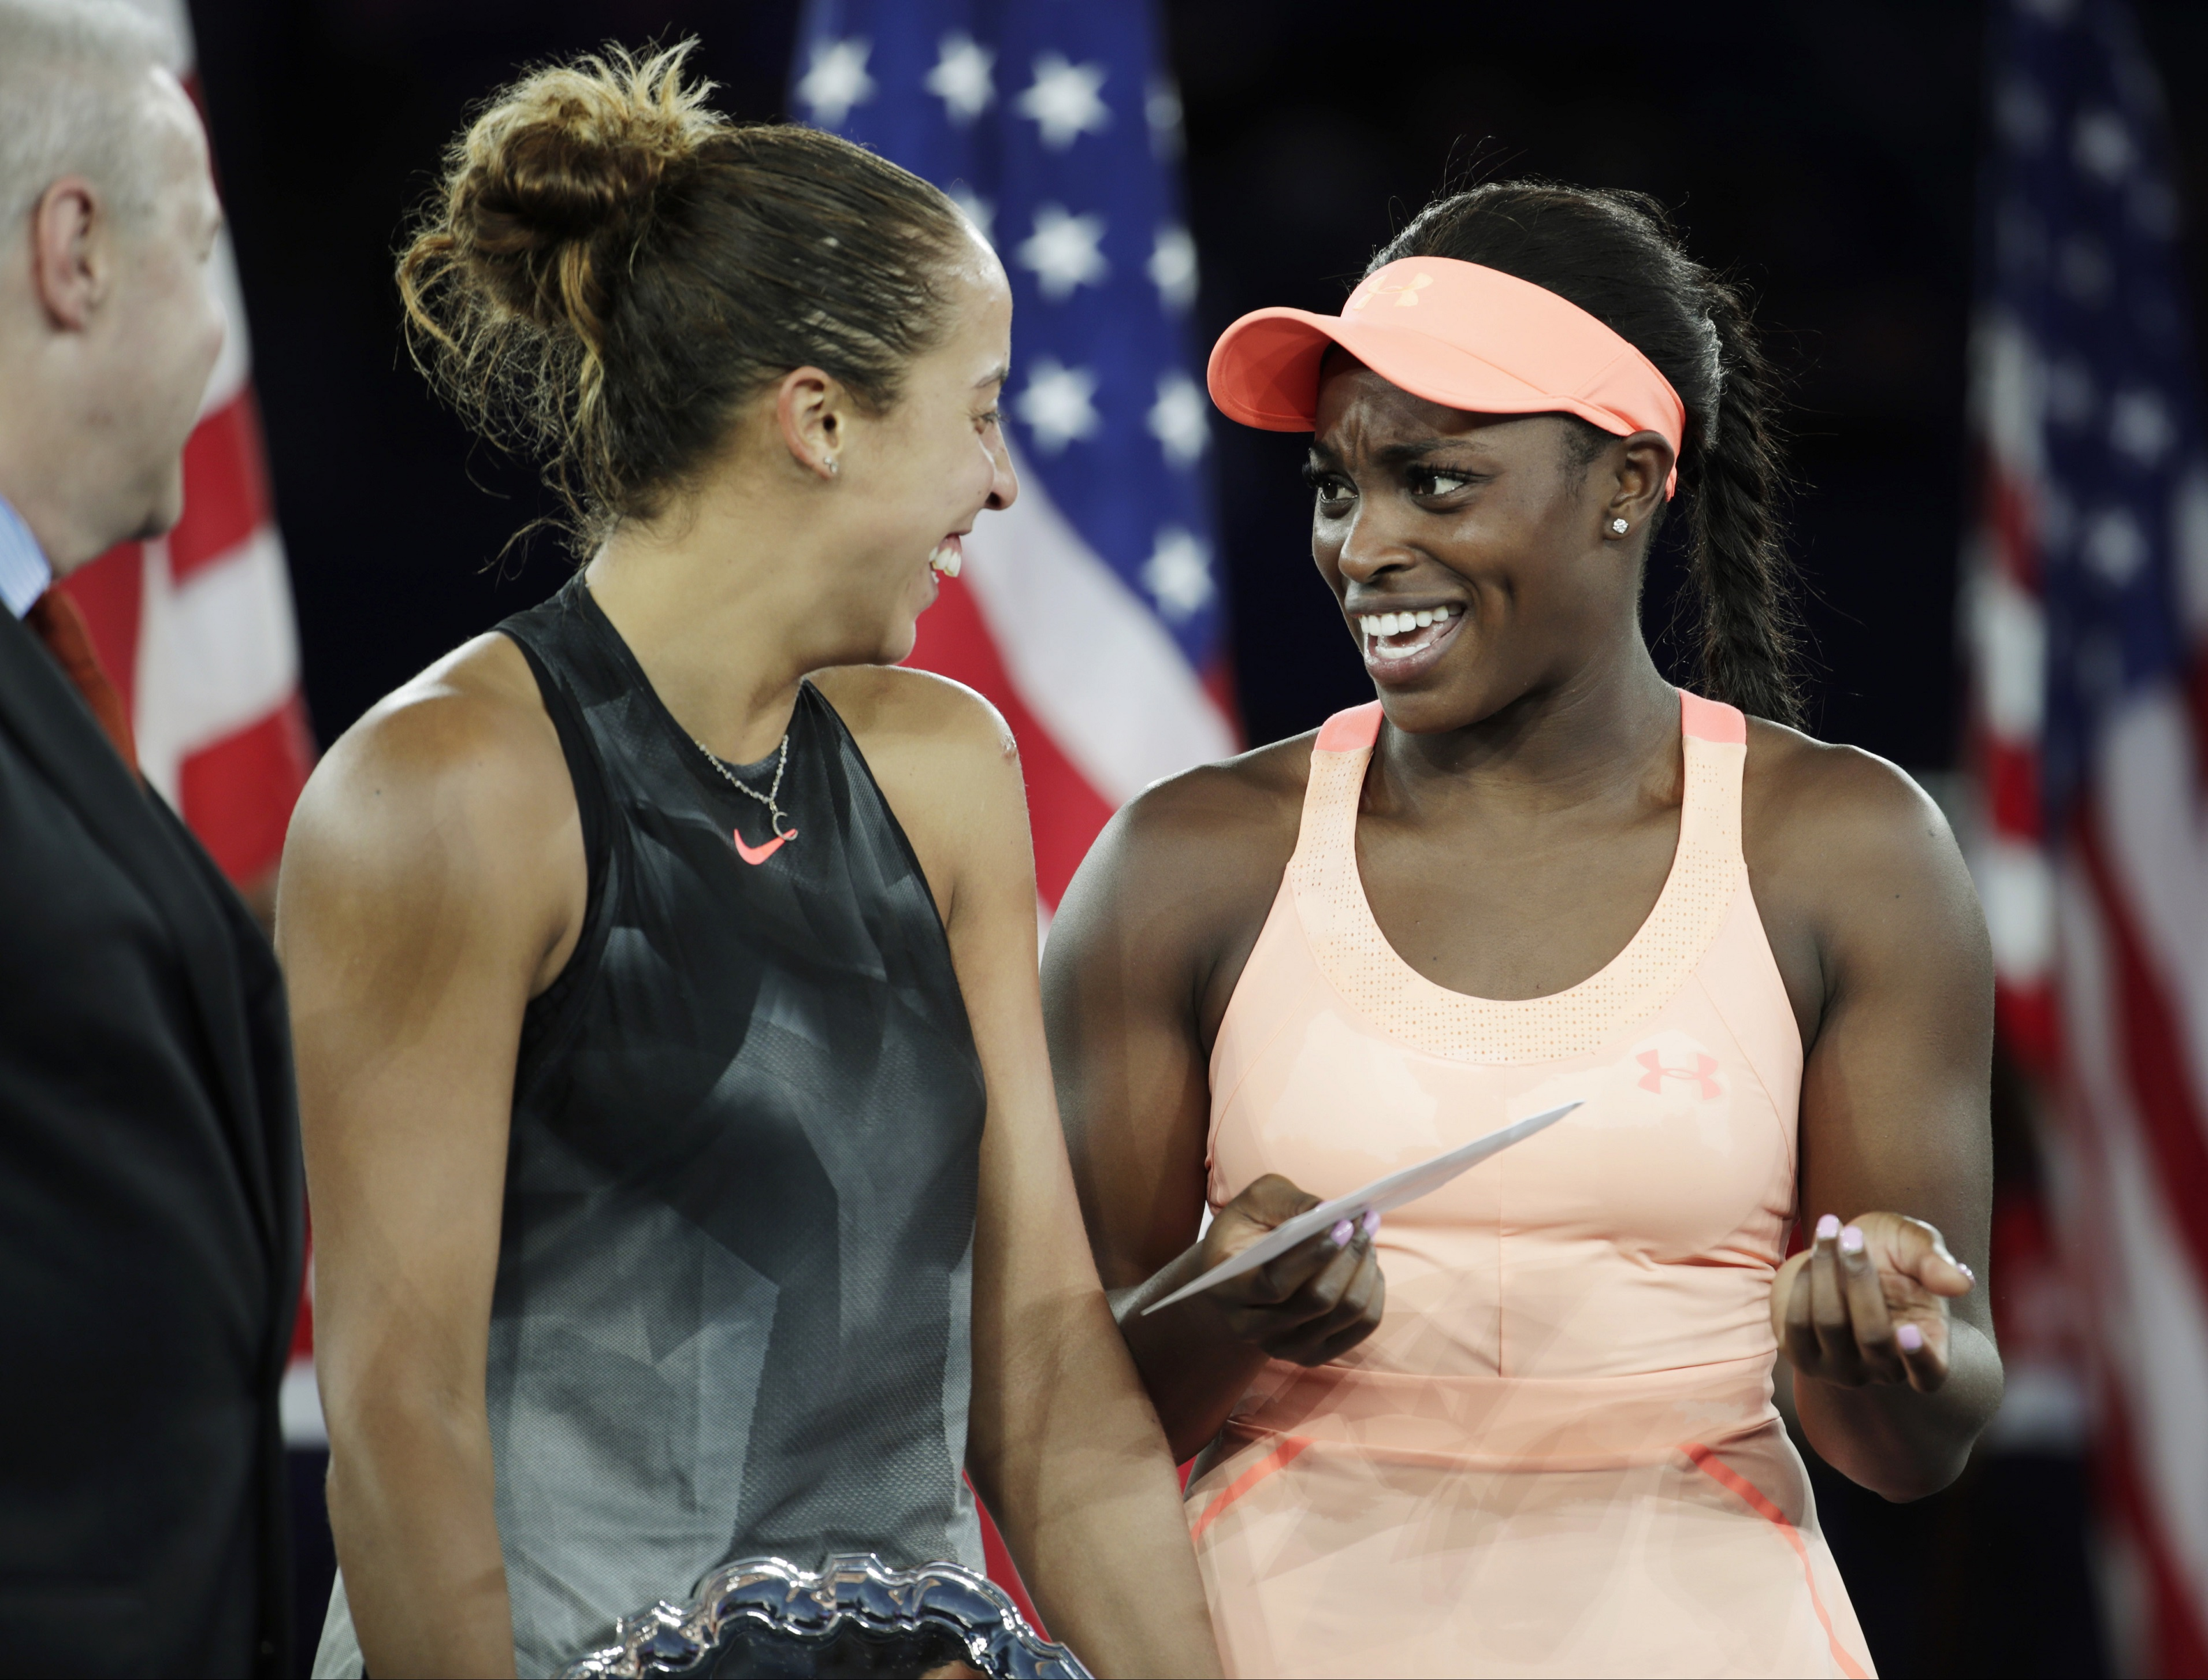 Sloane Stephens talks to Madison Keys after winning the US Open